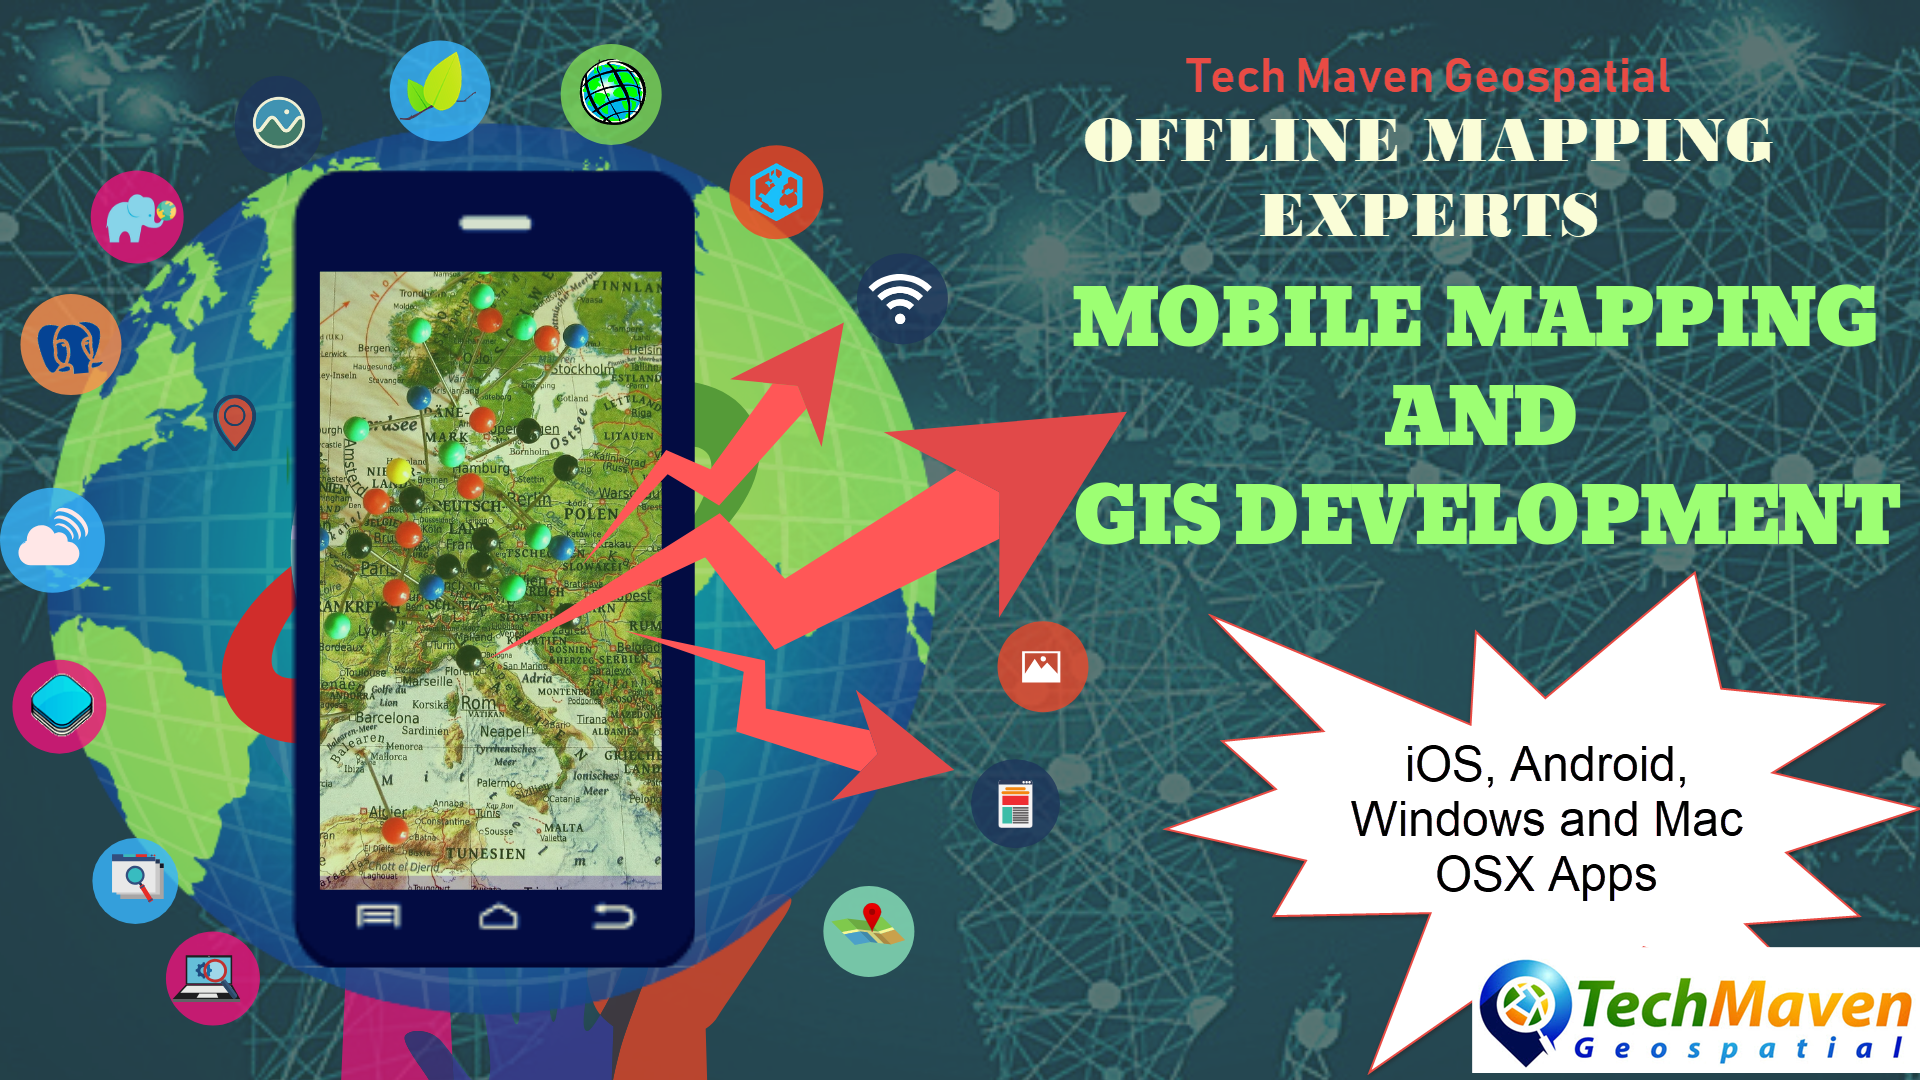 Mobile Mapping/GIS Development